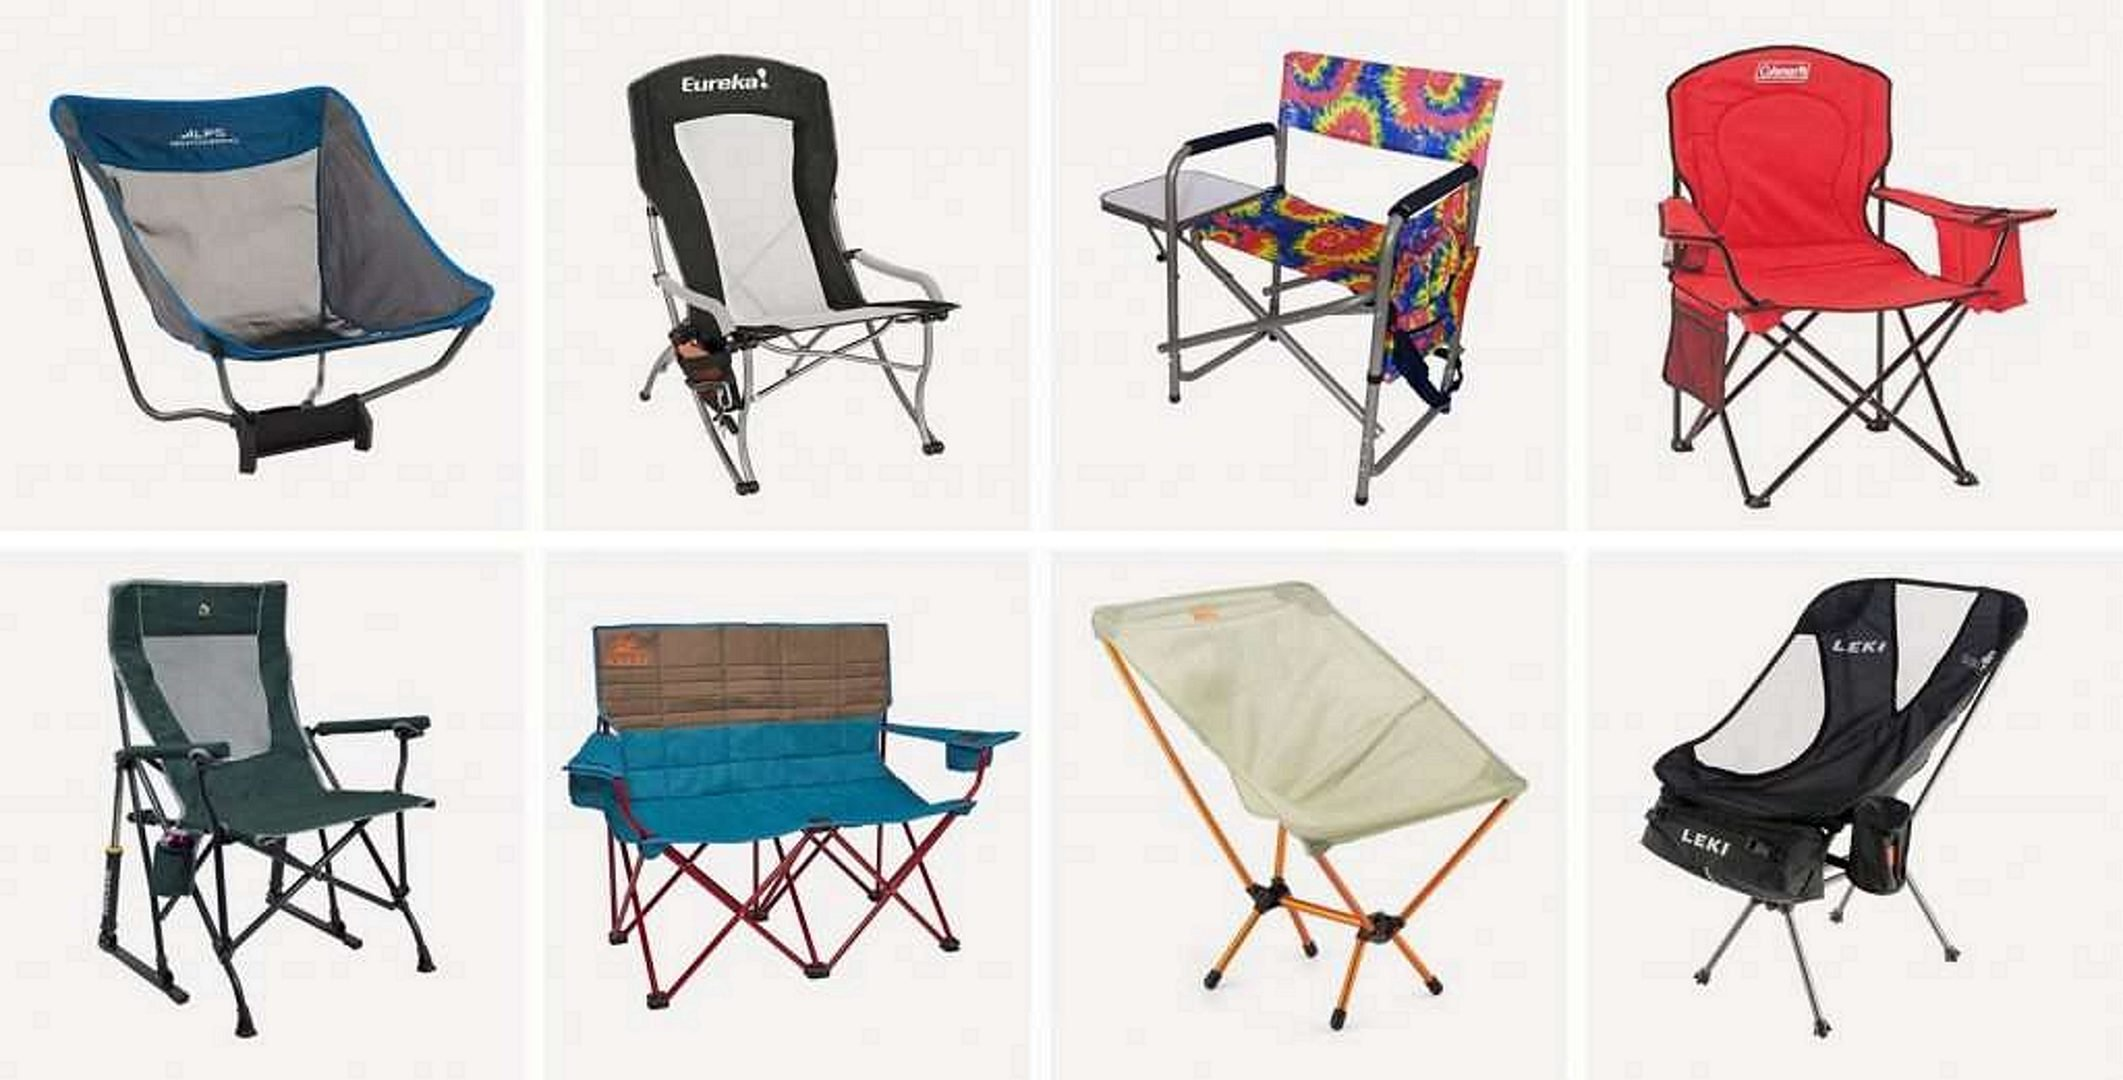 Types and shapes of camping chairs